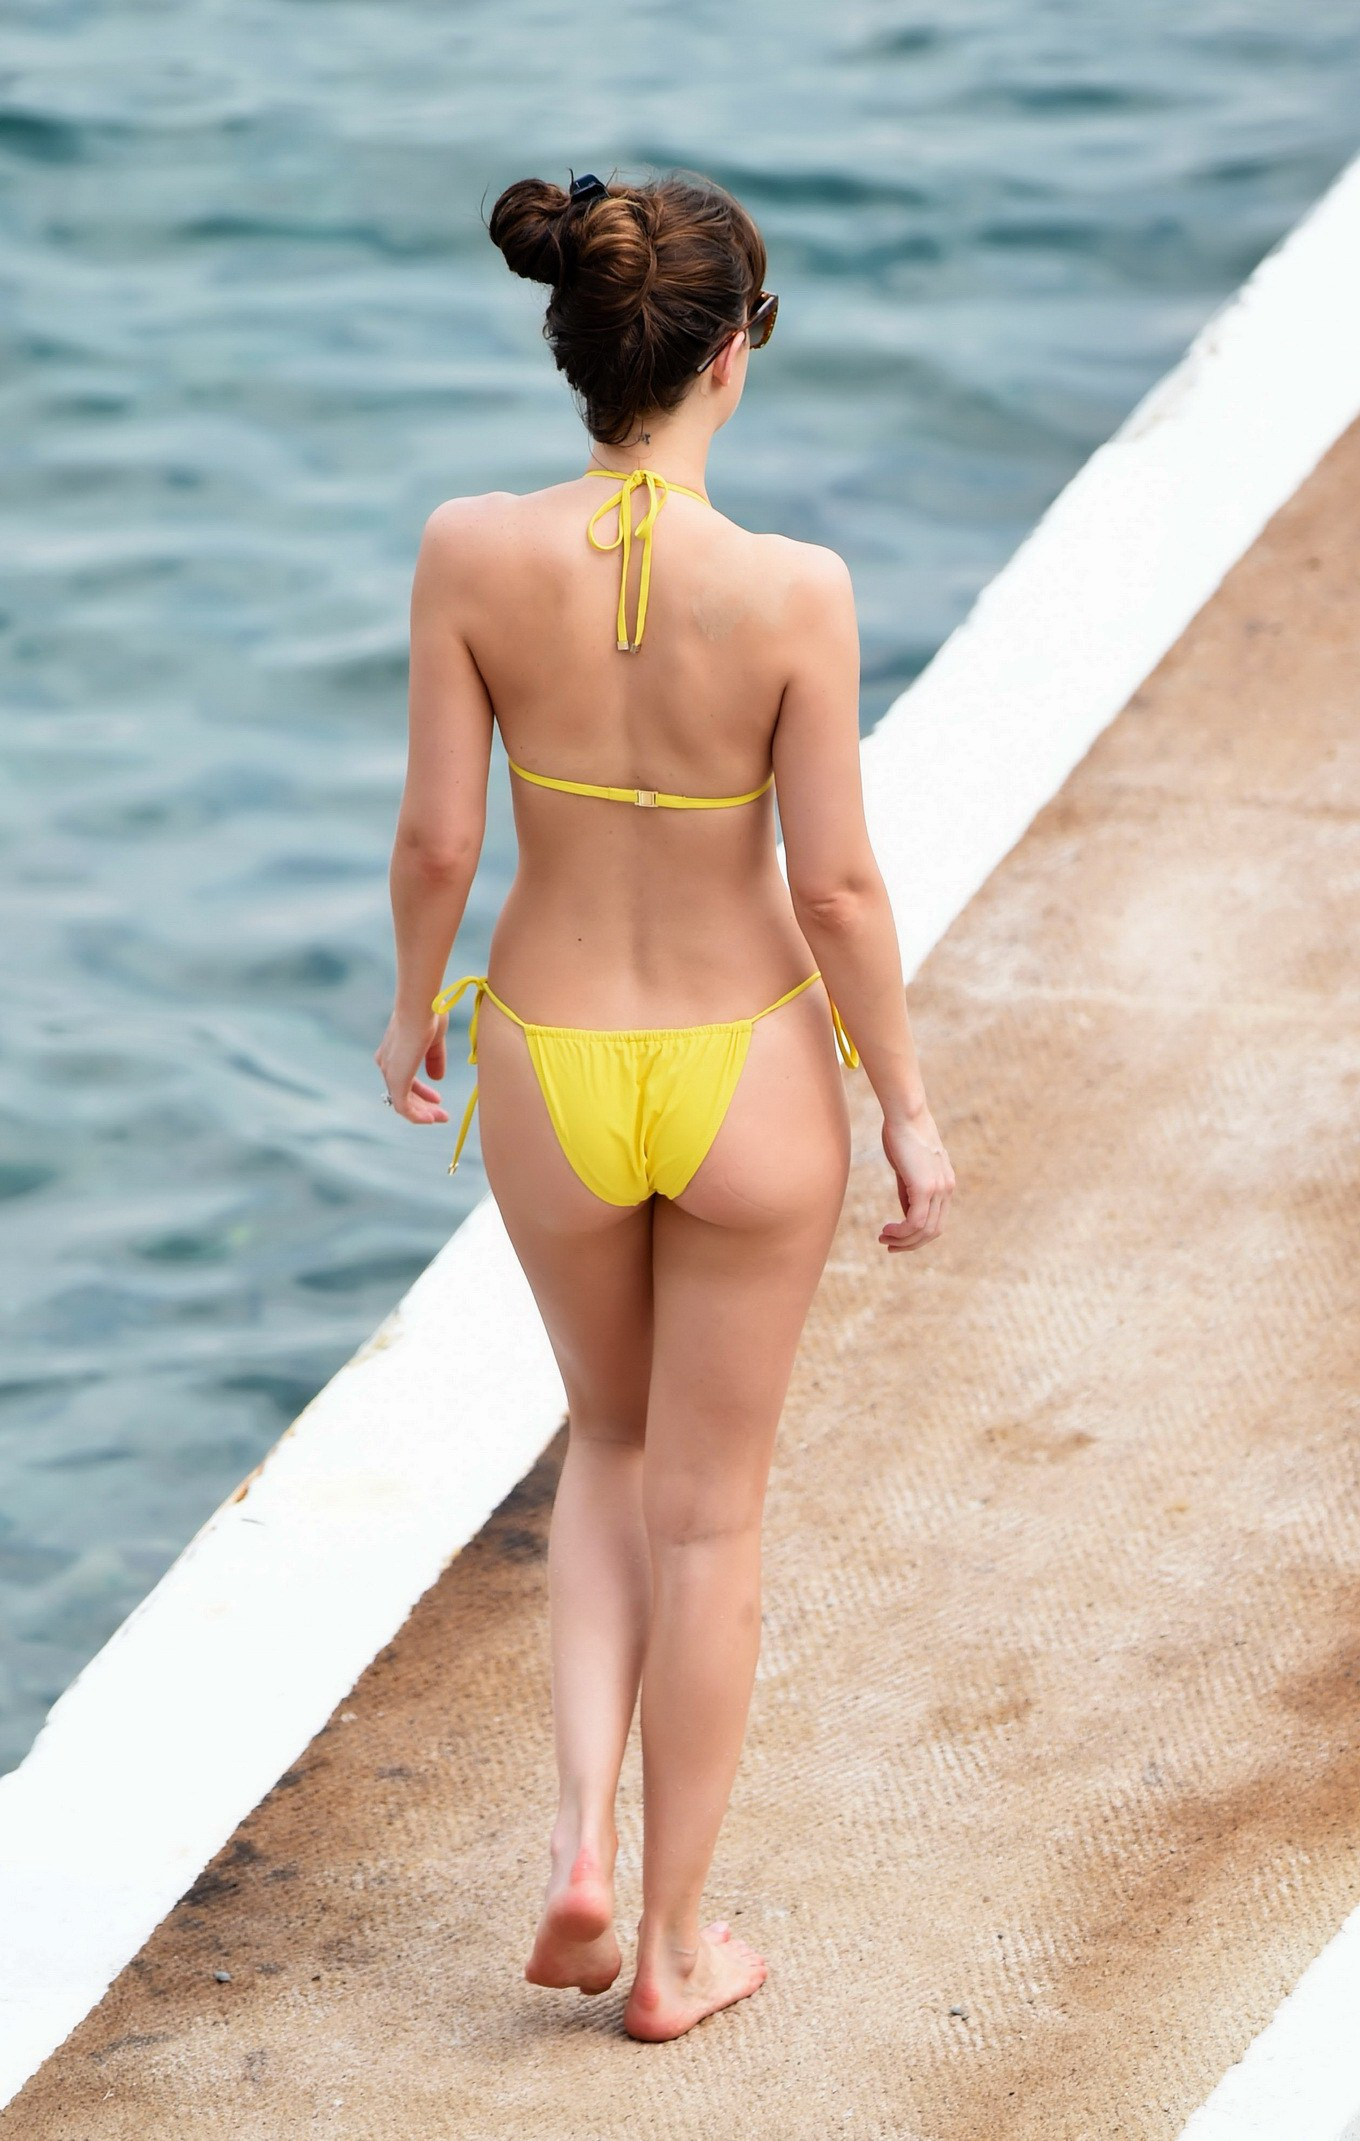 off her hot body in a wet sheer yellow bikini at the beach in france